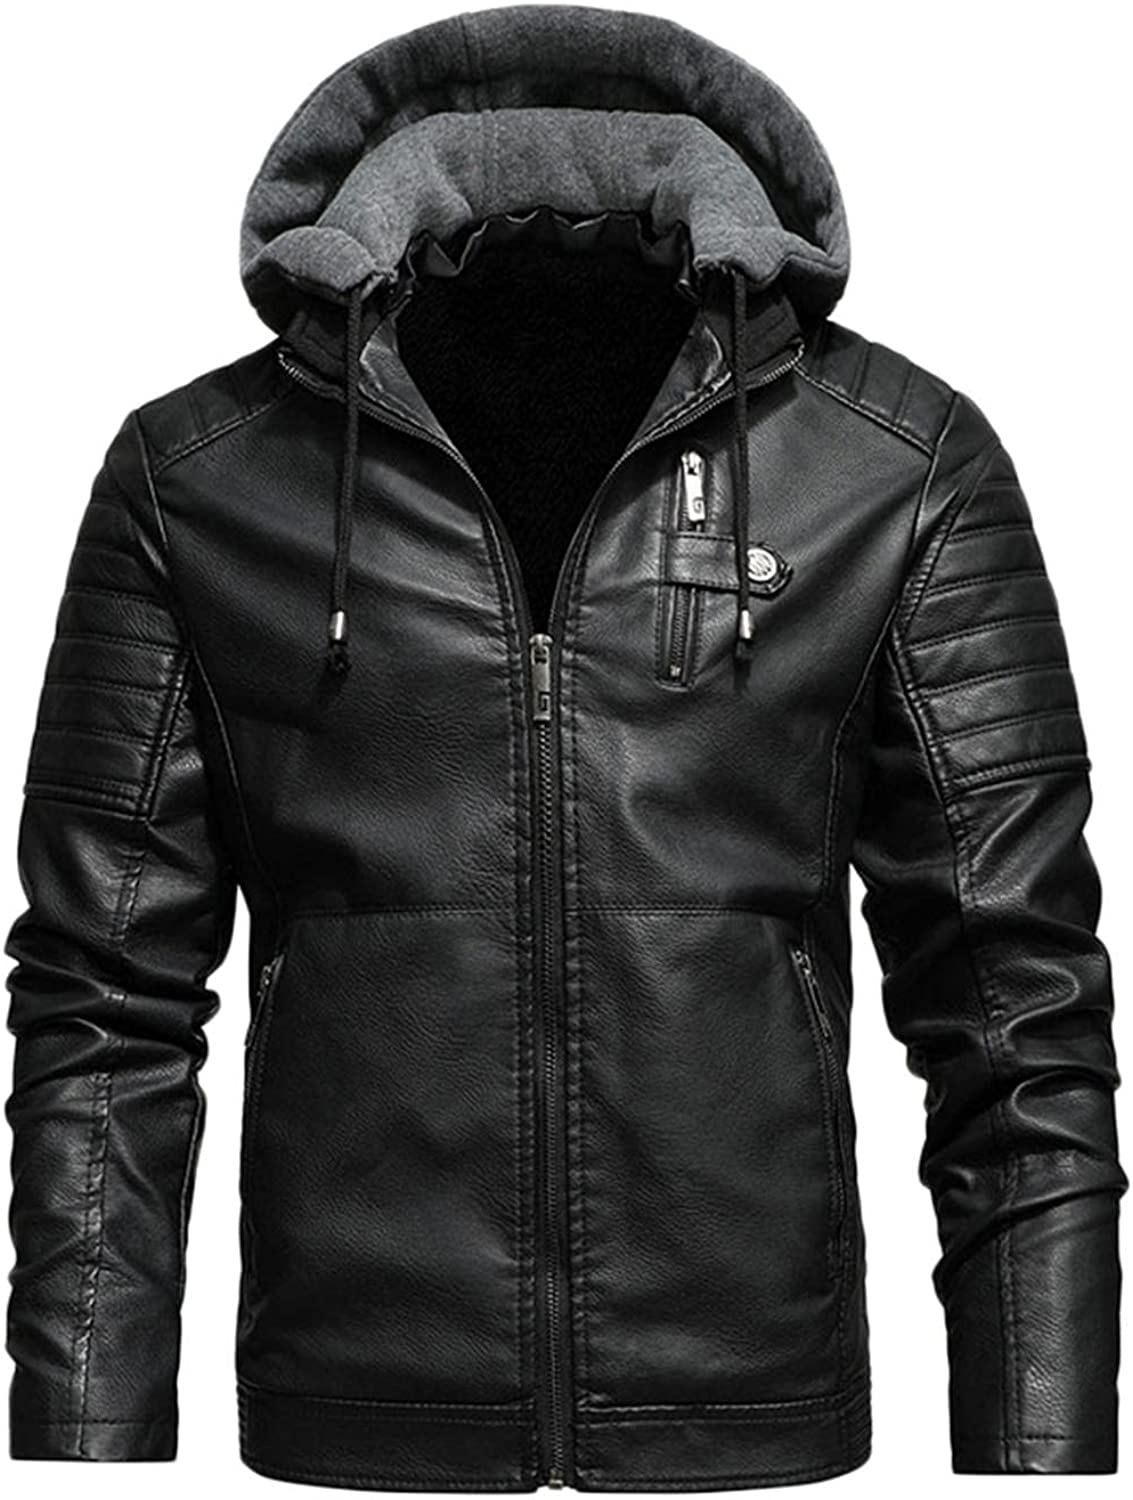 LEIYAN Mens Hooded Faux Leather Jacket Zip Up Long Sleeve Stand Collar Casual Lightweight Motorcycle Bomber Jacket